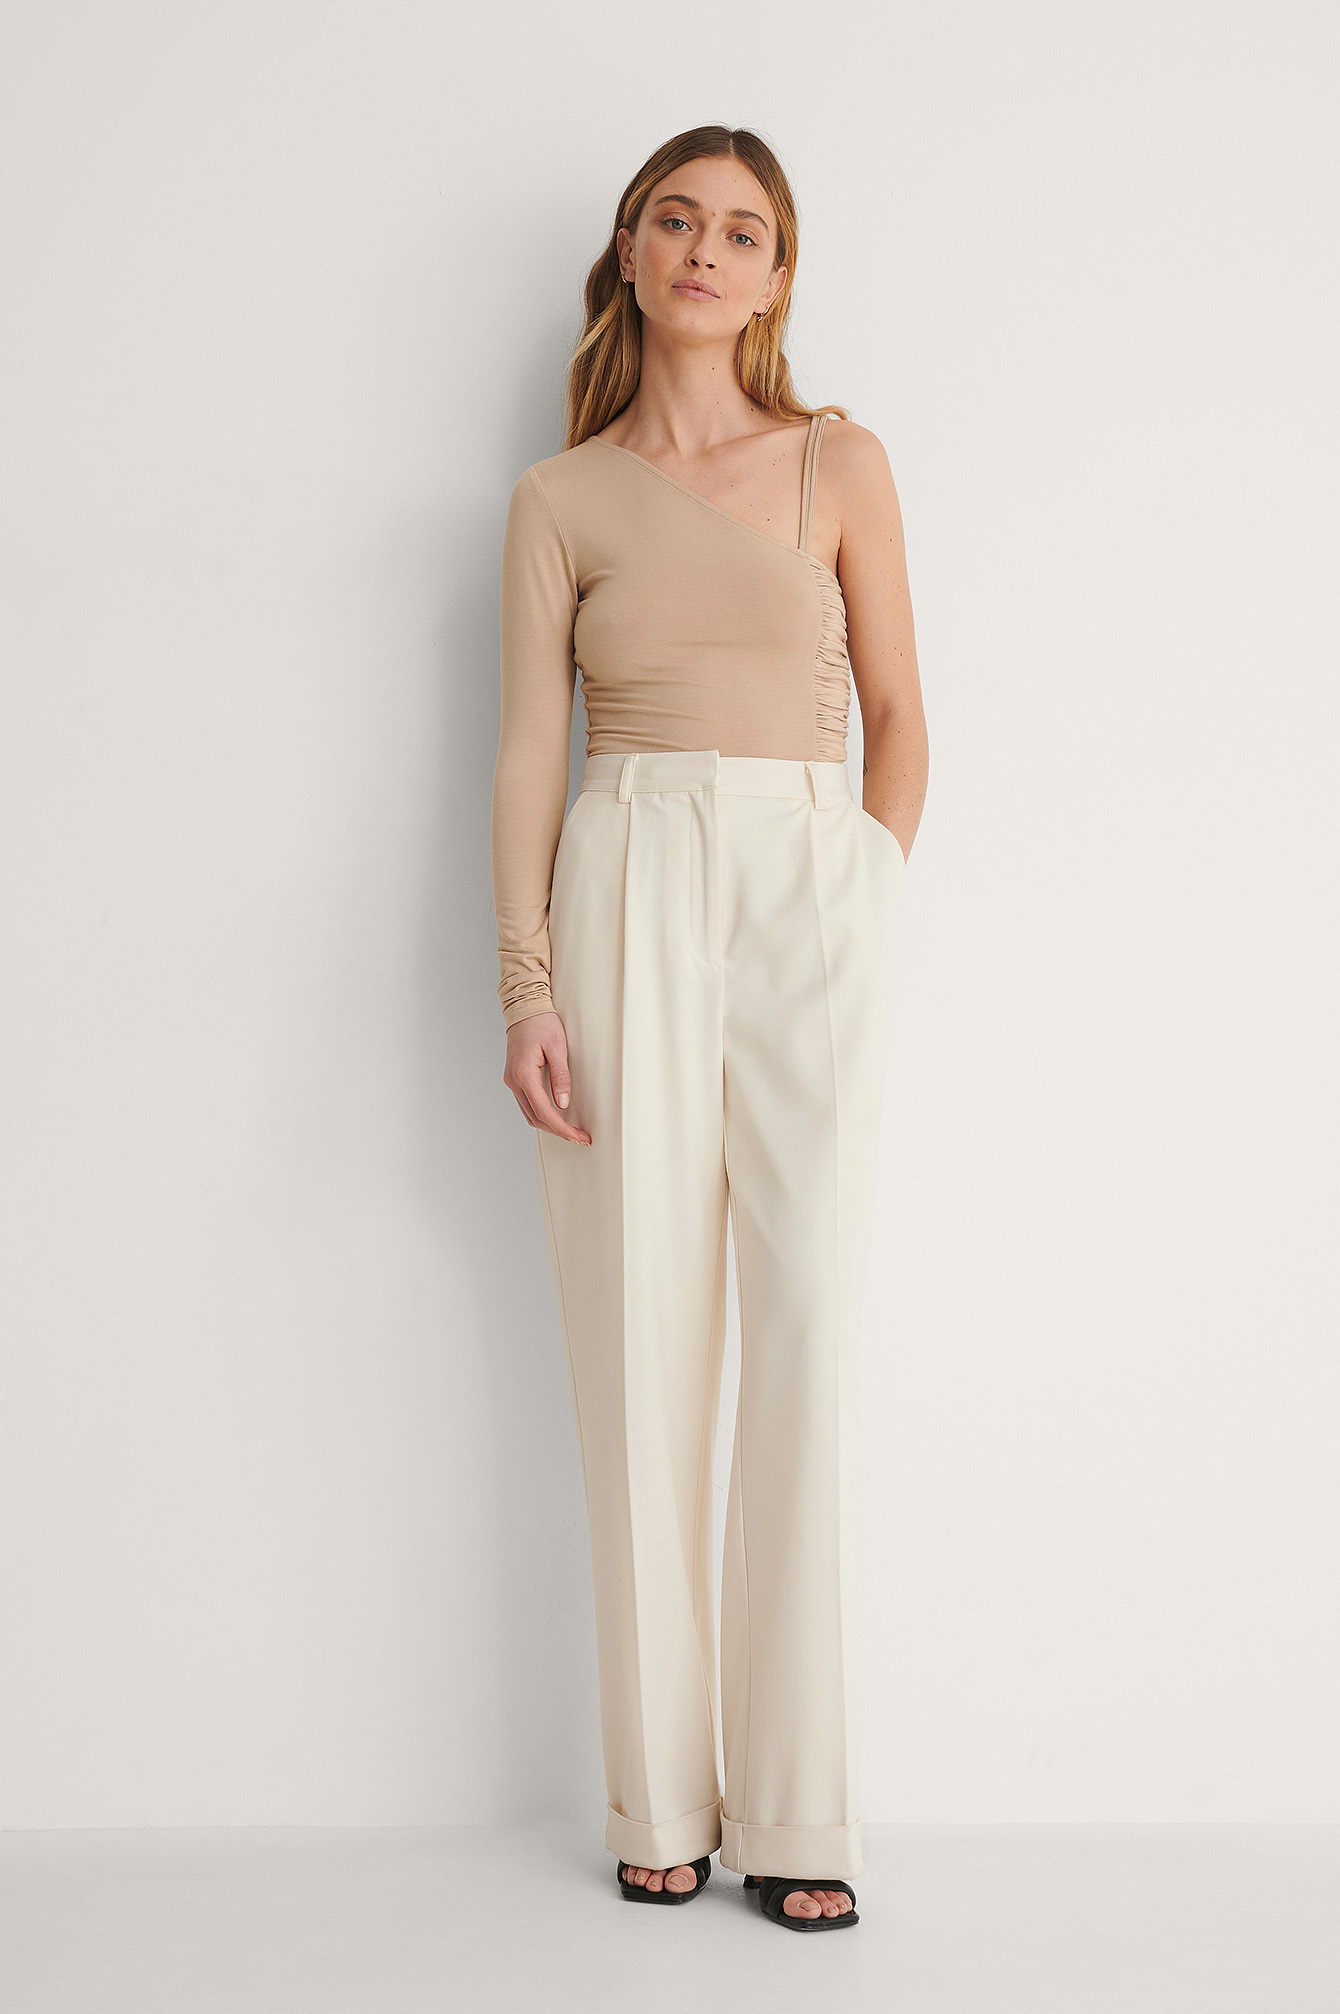 Side Draped One Arm Top Outfit.